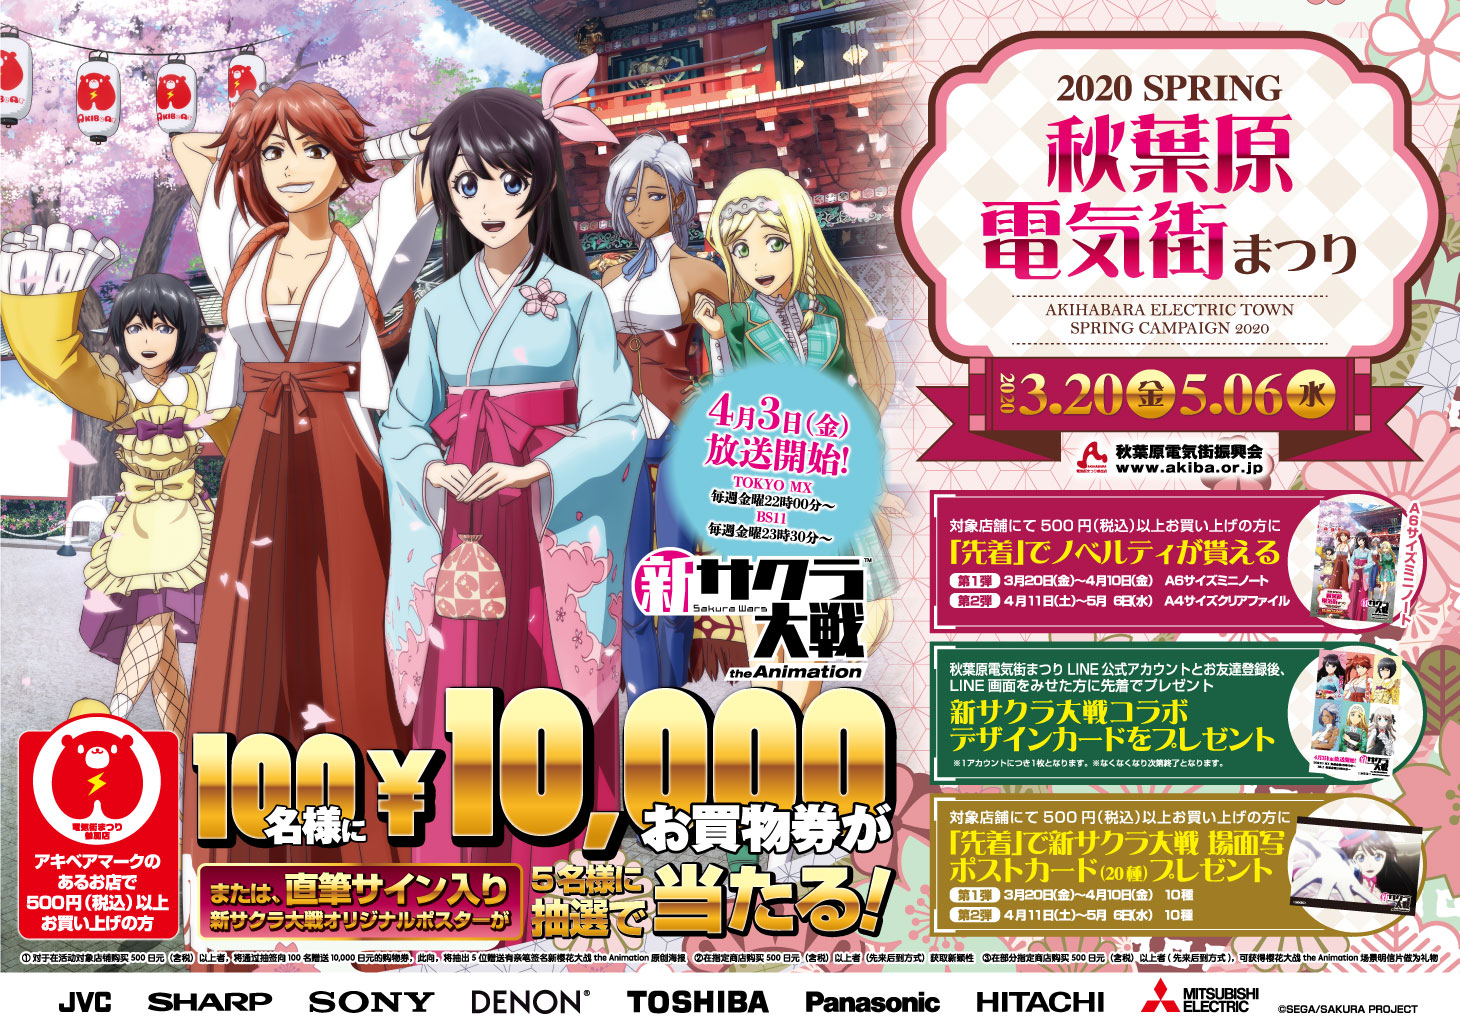 """Spring Akihabara Electric Town Festival collaborates with """"New Sakura Wars the Animation"""" and will be held from March 20 (Fri)! !"""